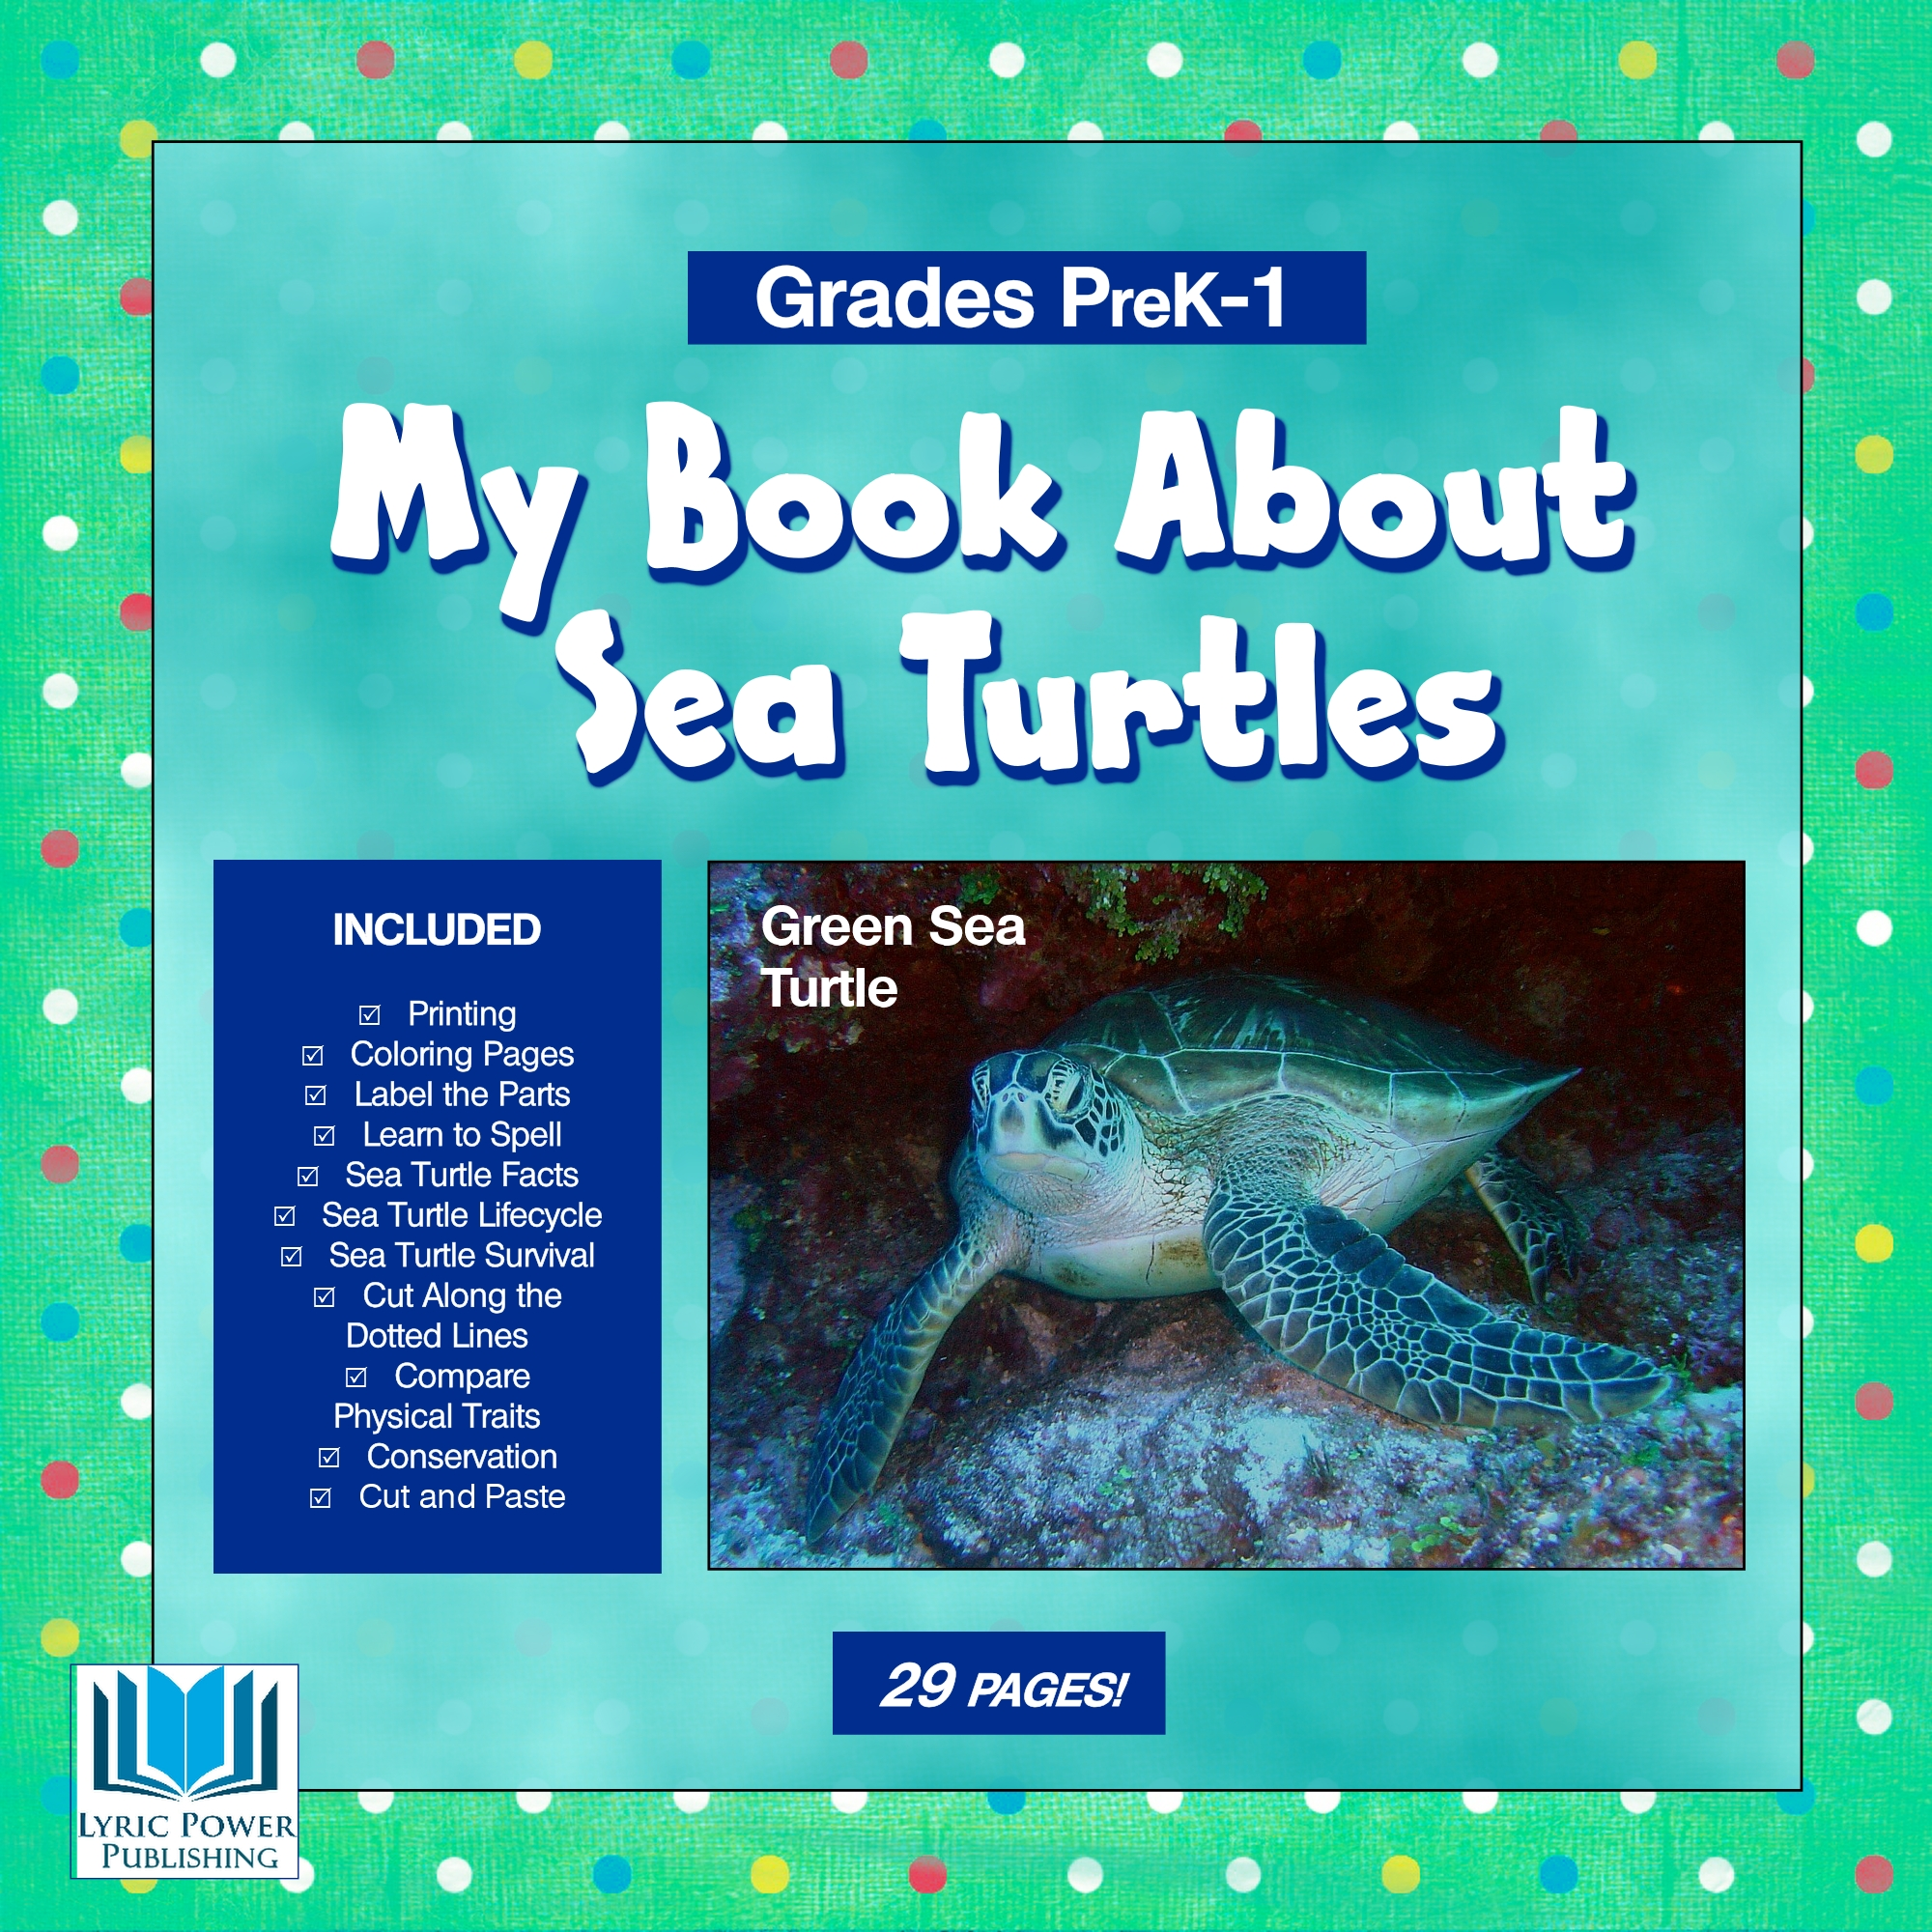 A seafoam green book cover about seaturtles, with an image of a Green Sea Turtle